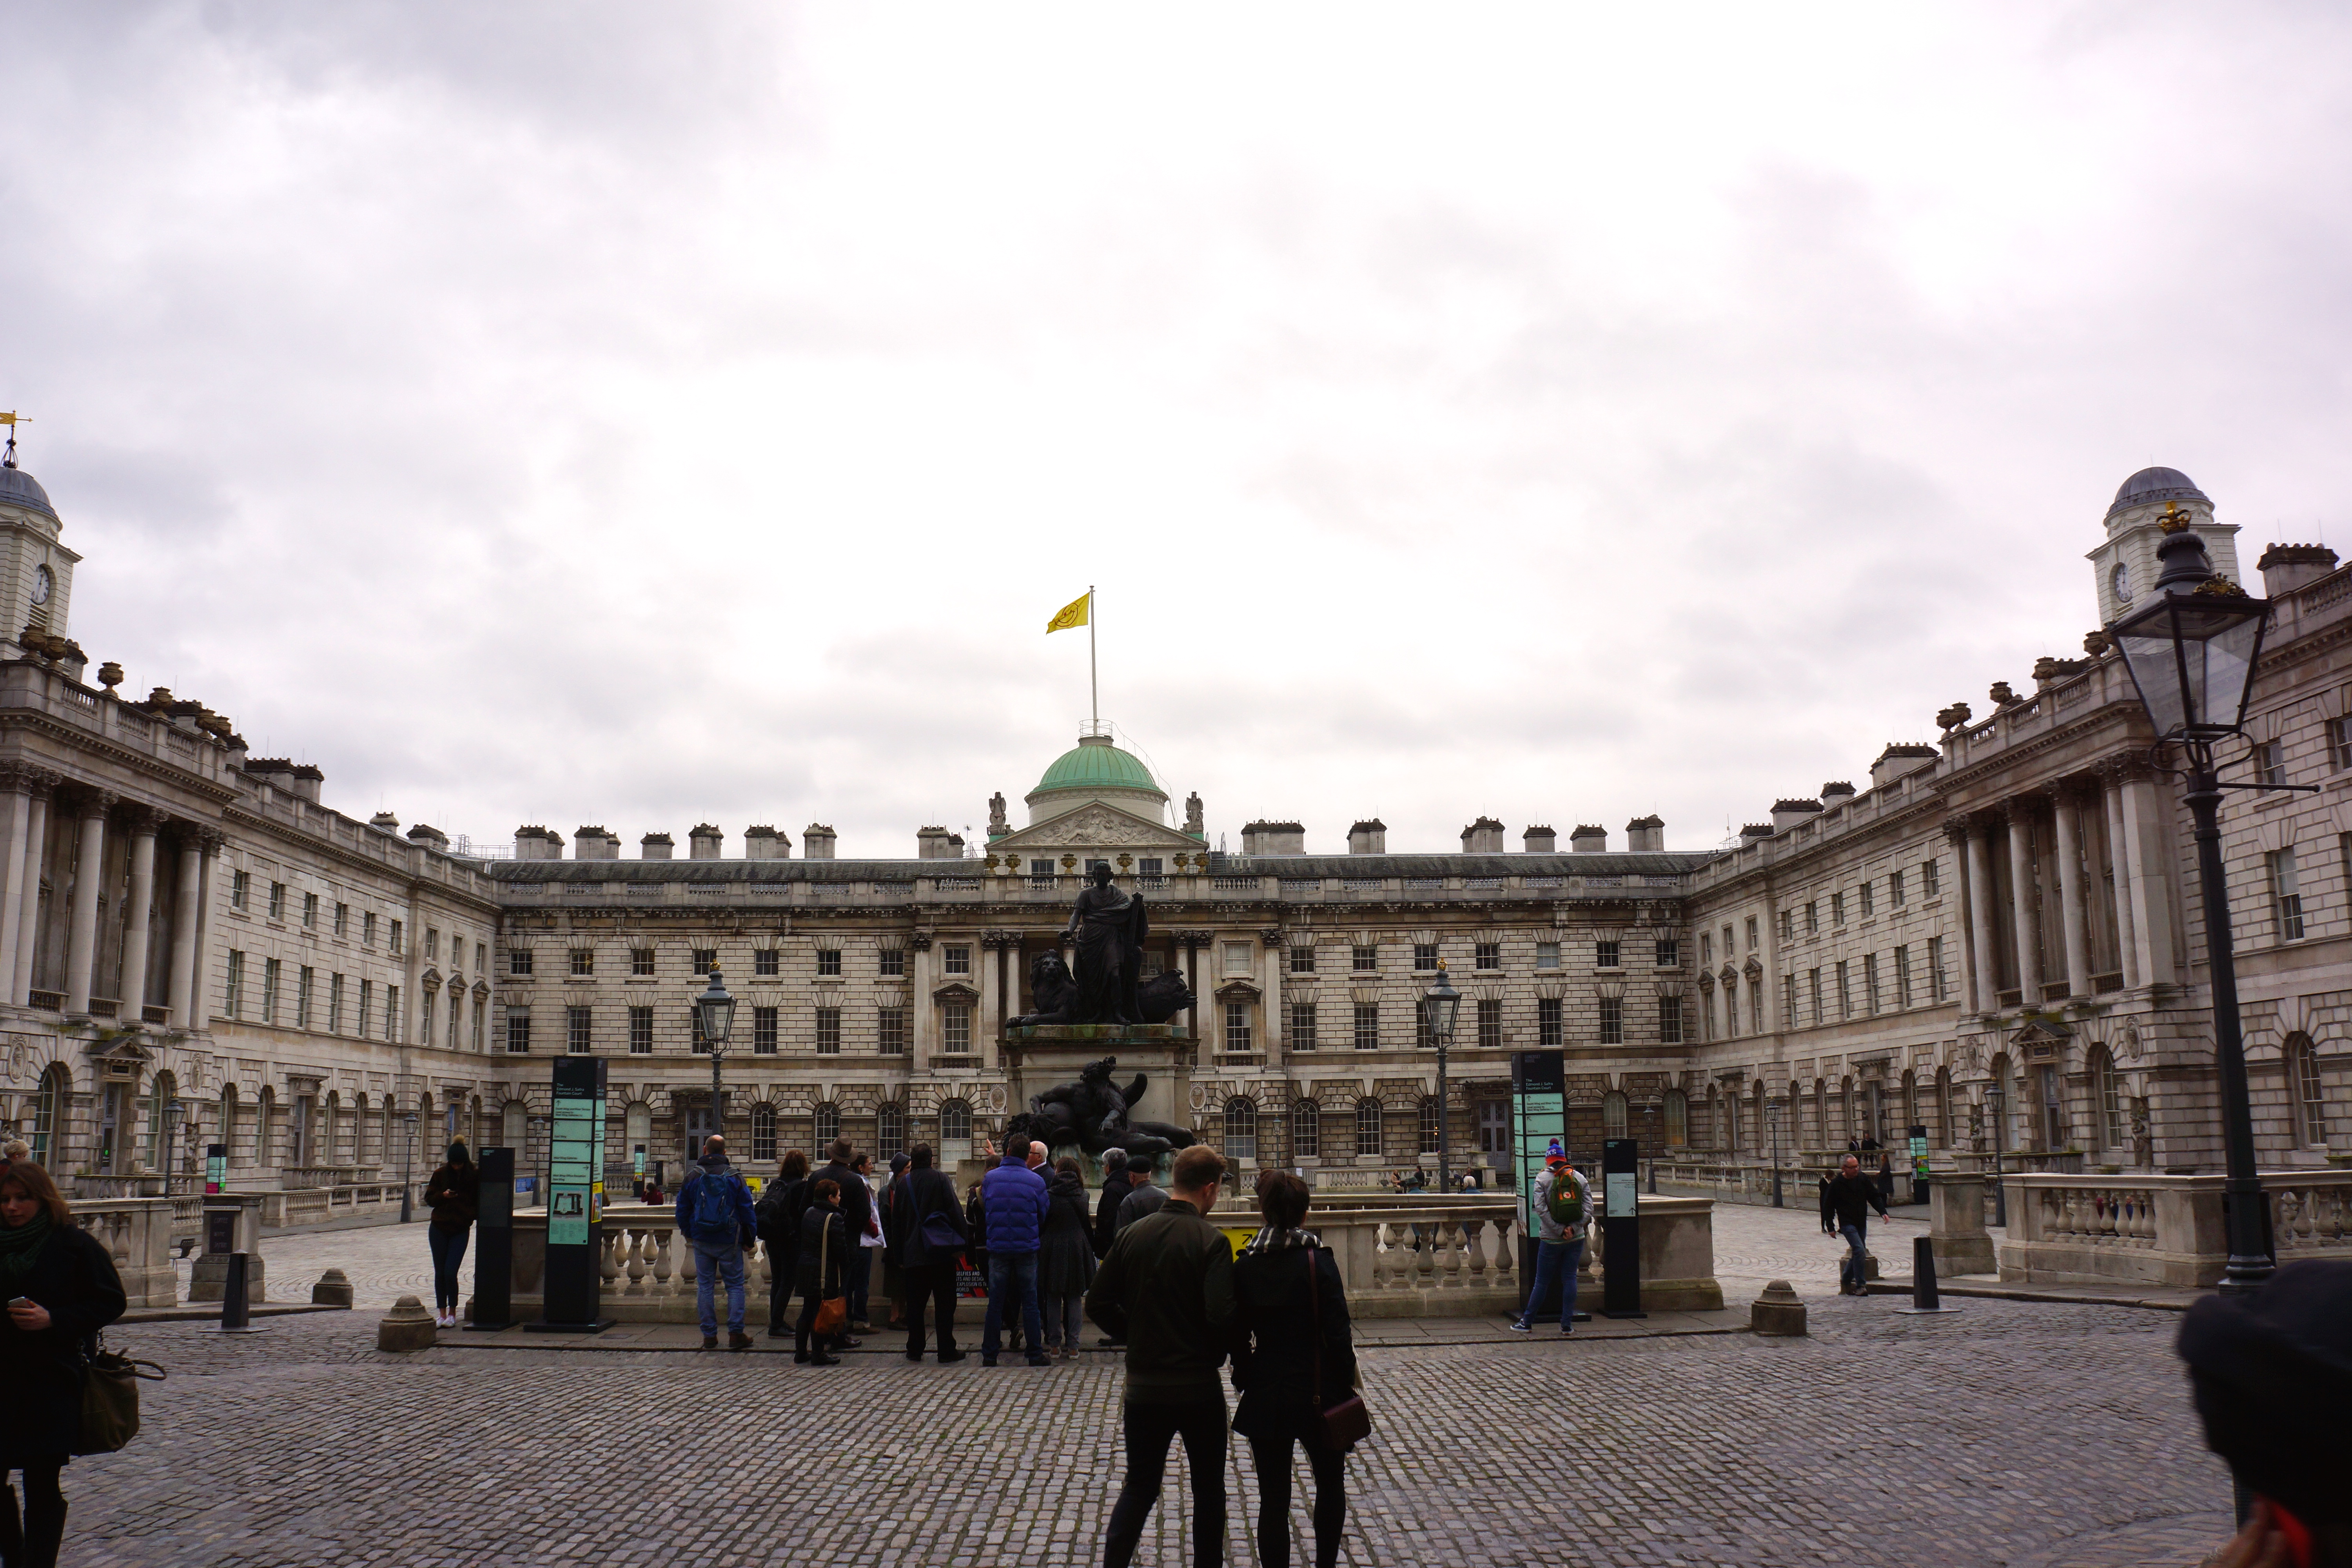 Great london buildings somerset house londontopia one of the stateliest homes in london somerset house at one point was a tudor palace and today sees use as a venue for the arts and major event location aiddatafo Choice Image